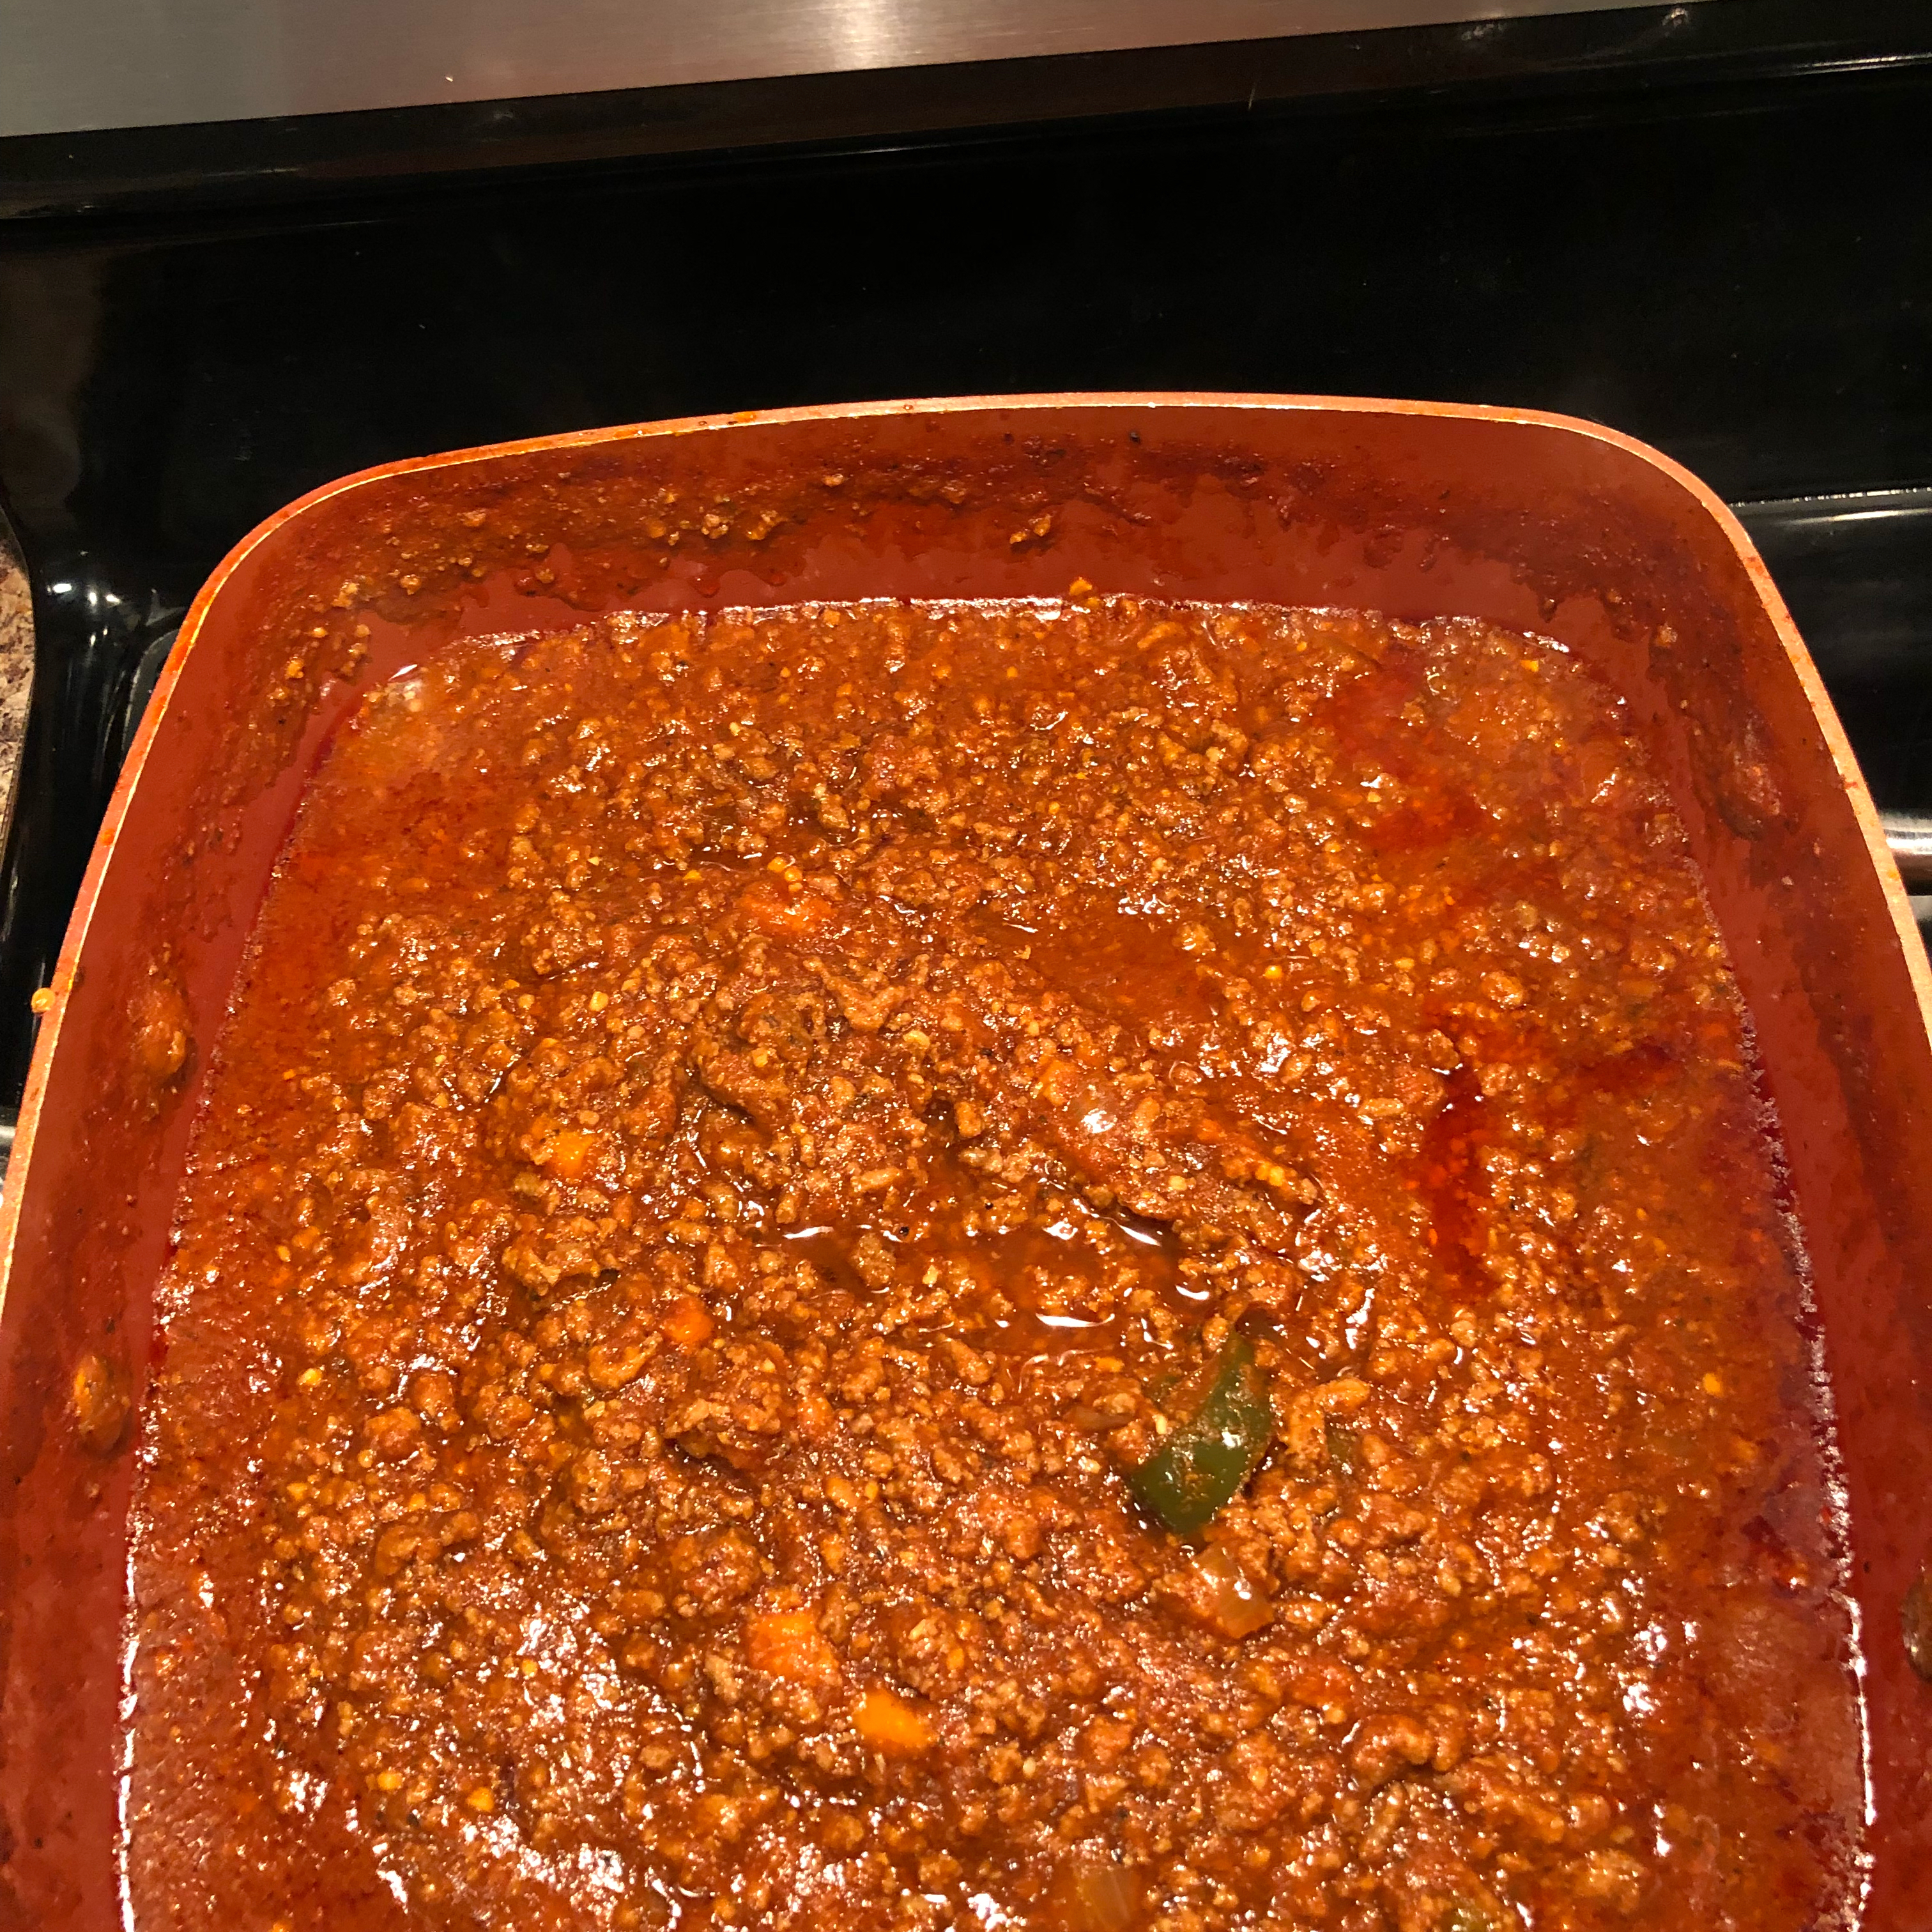 Spicy Slow-Cooked Beanless Chili Timothy Hanshaw